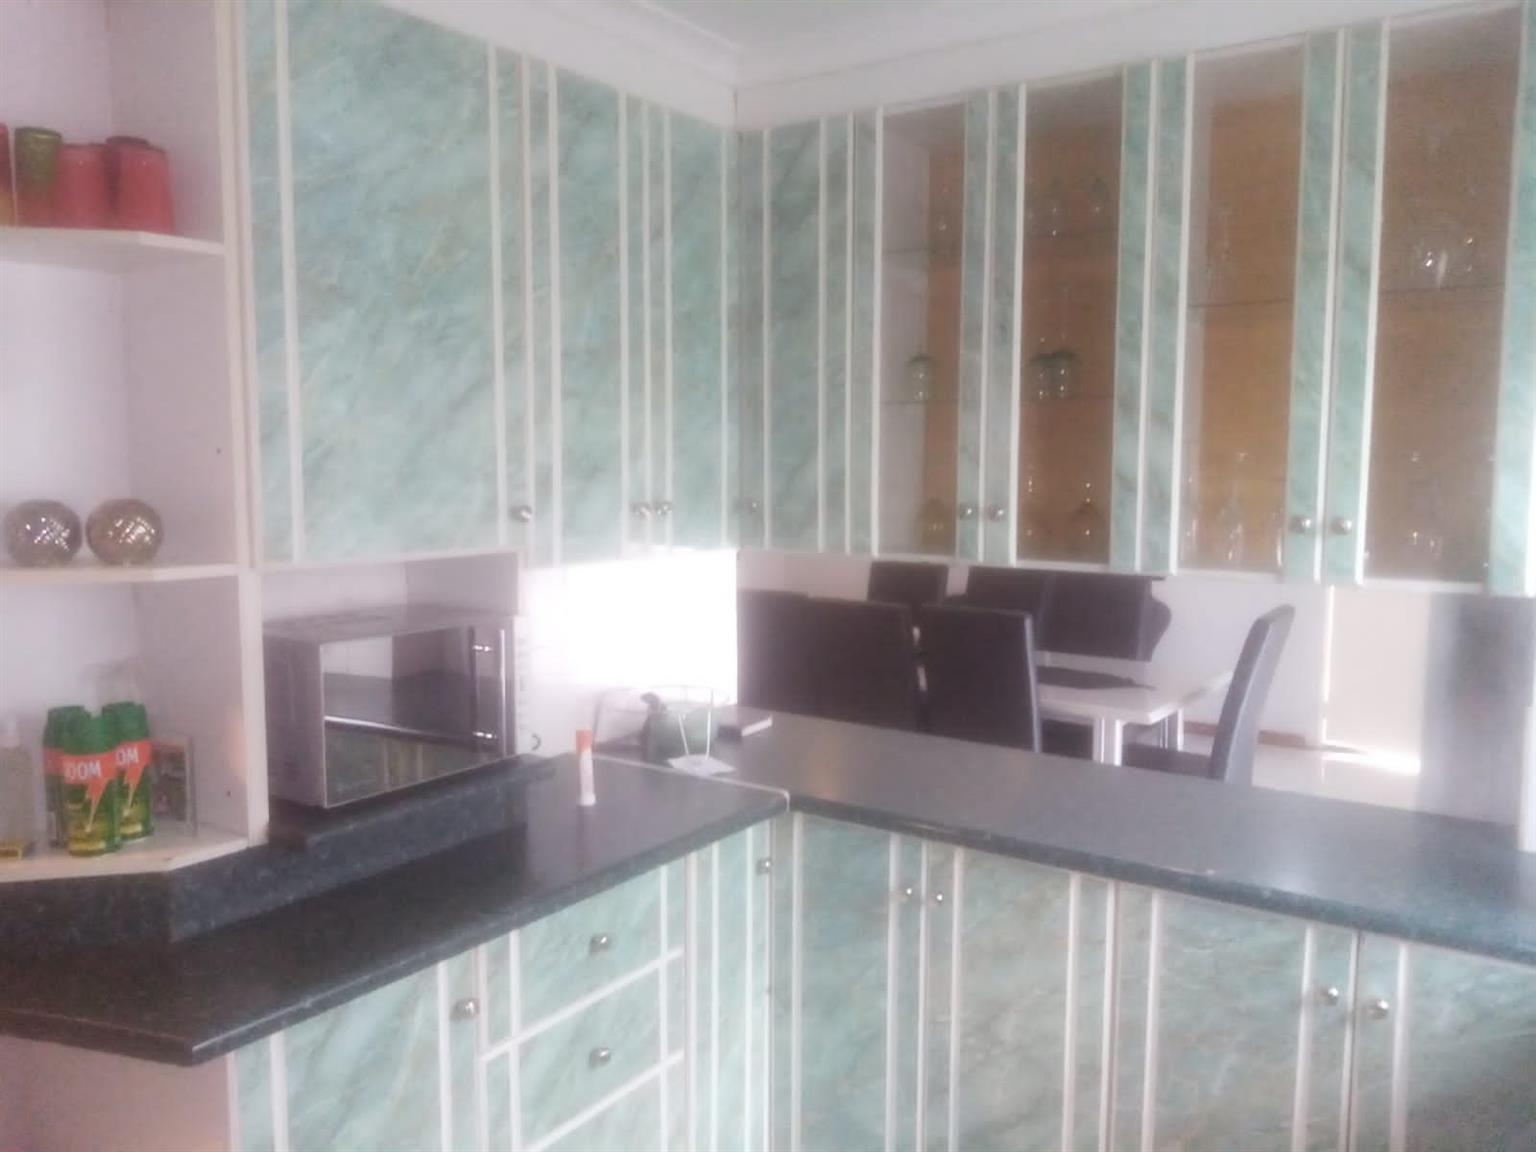 Big and specious family house on sale in Soshanguve Gg